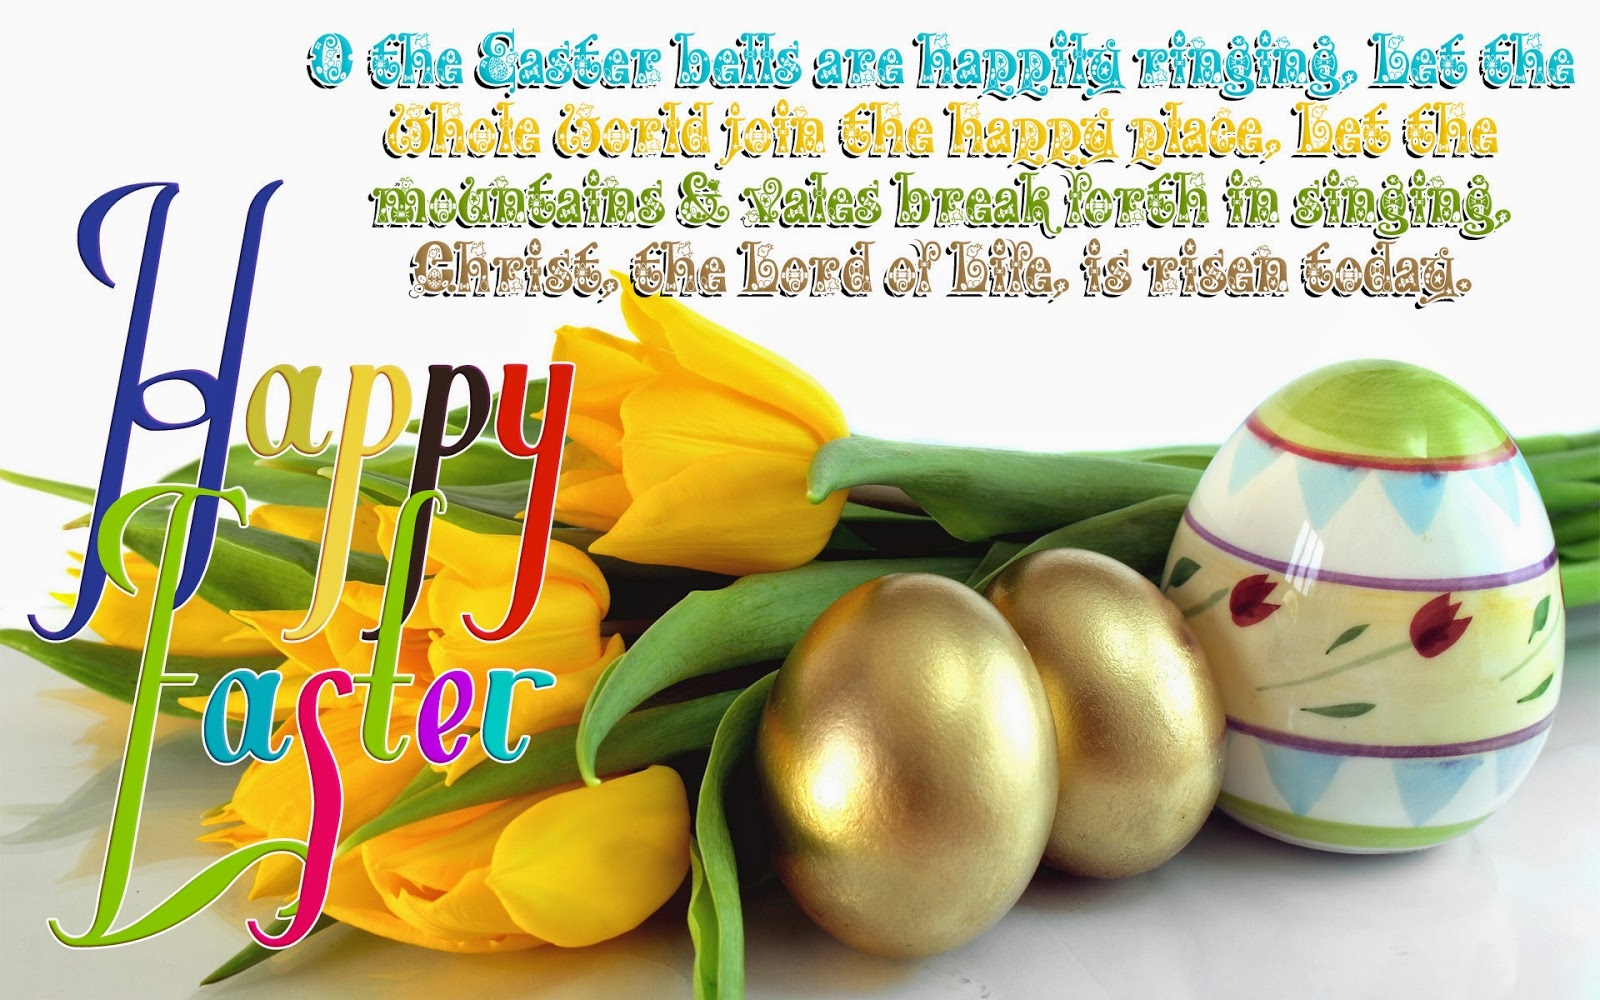 To My Wife Happy Easter.........Larger Easter Greetings Card